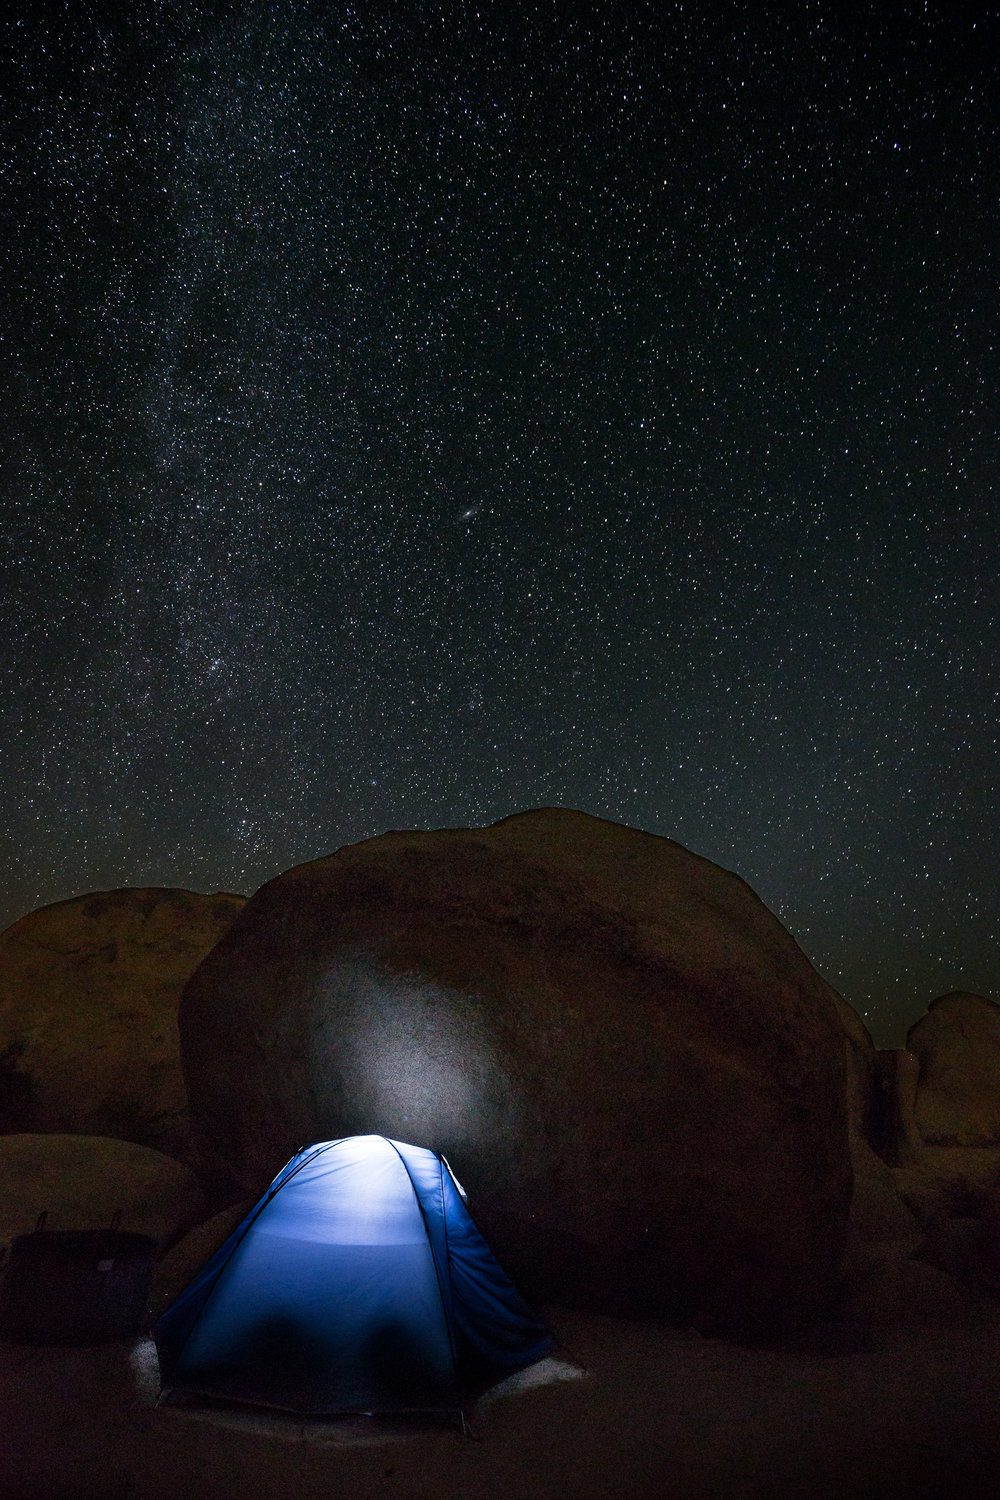 Campground im Joshua Tree NP